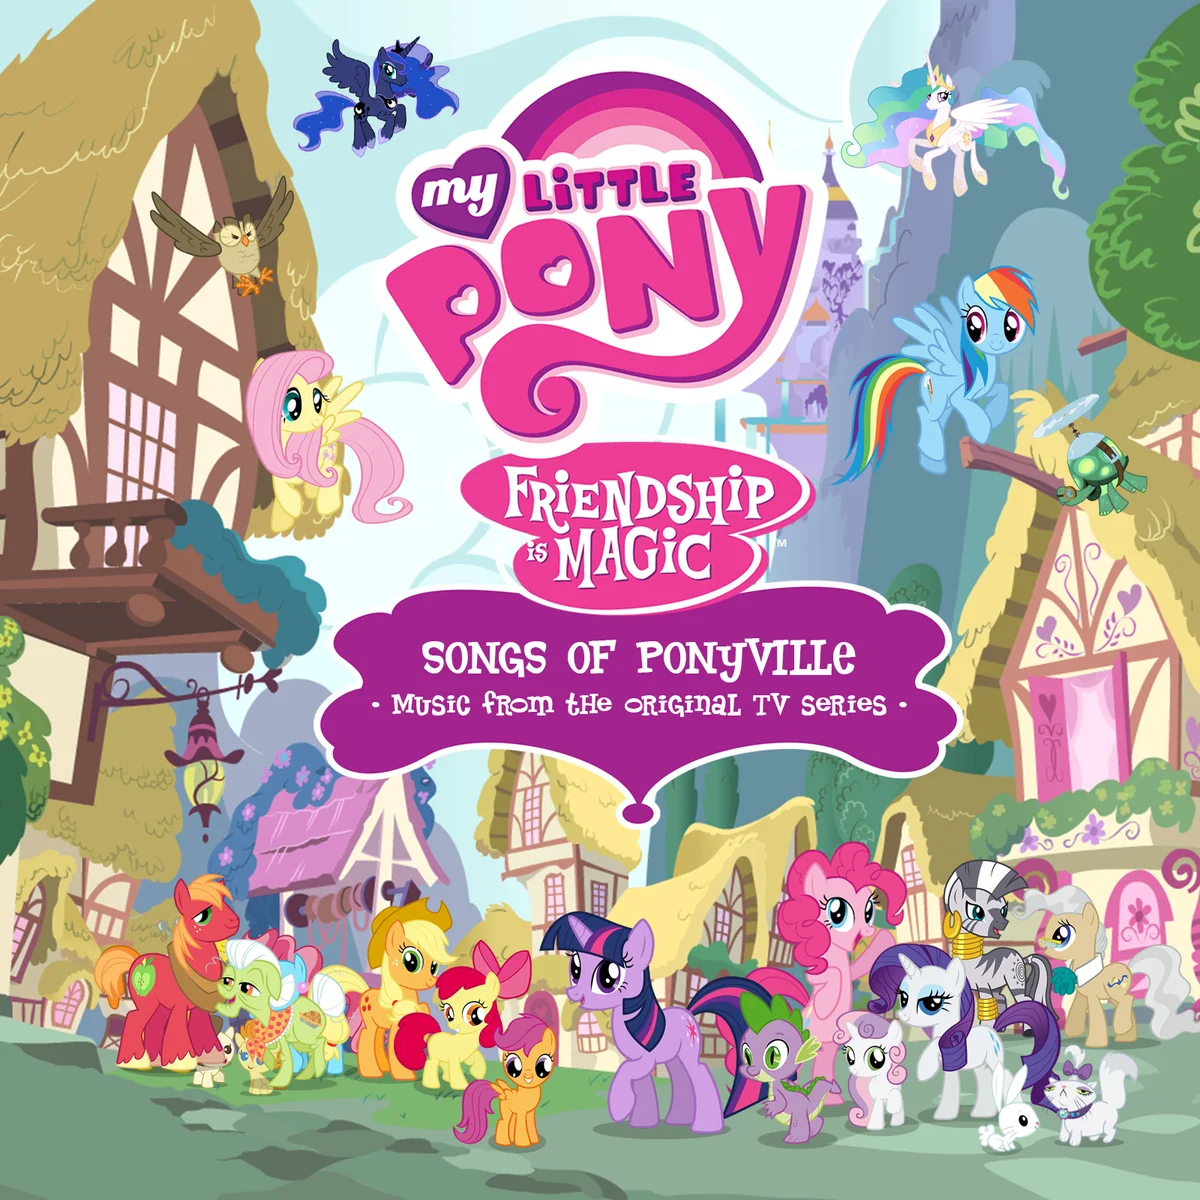 Songs of Ponyville | My Little Pony Friendship is Magic Wiki